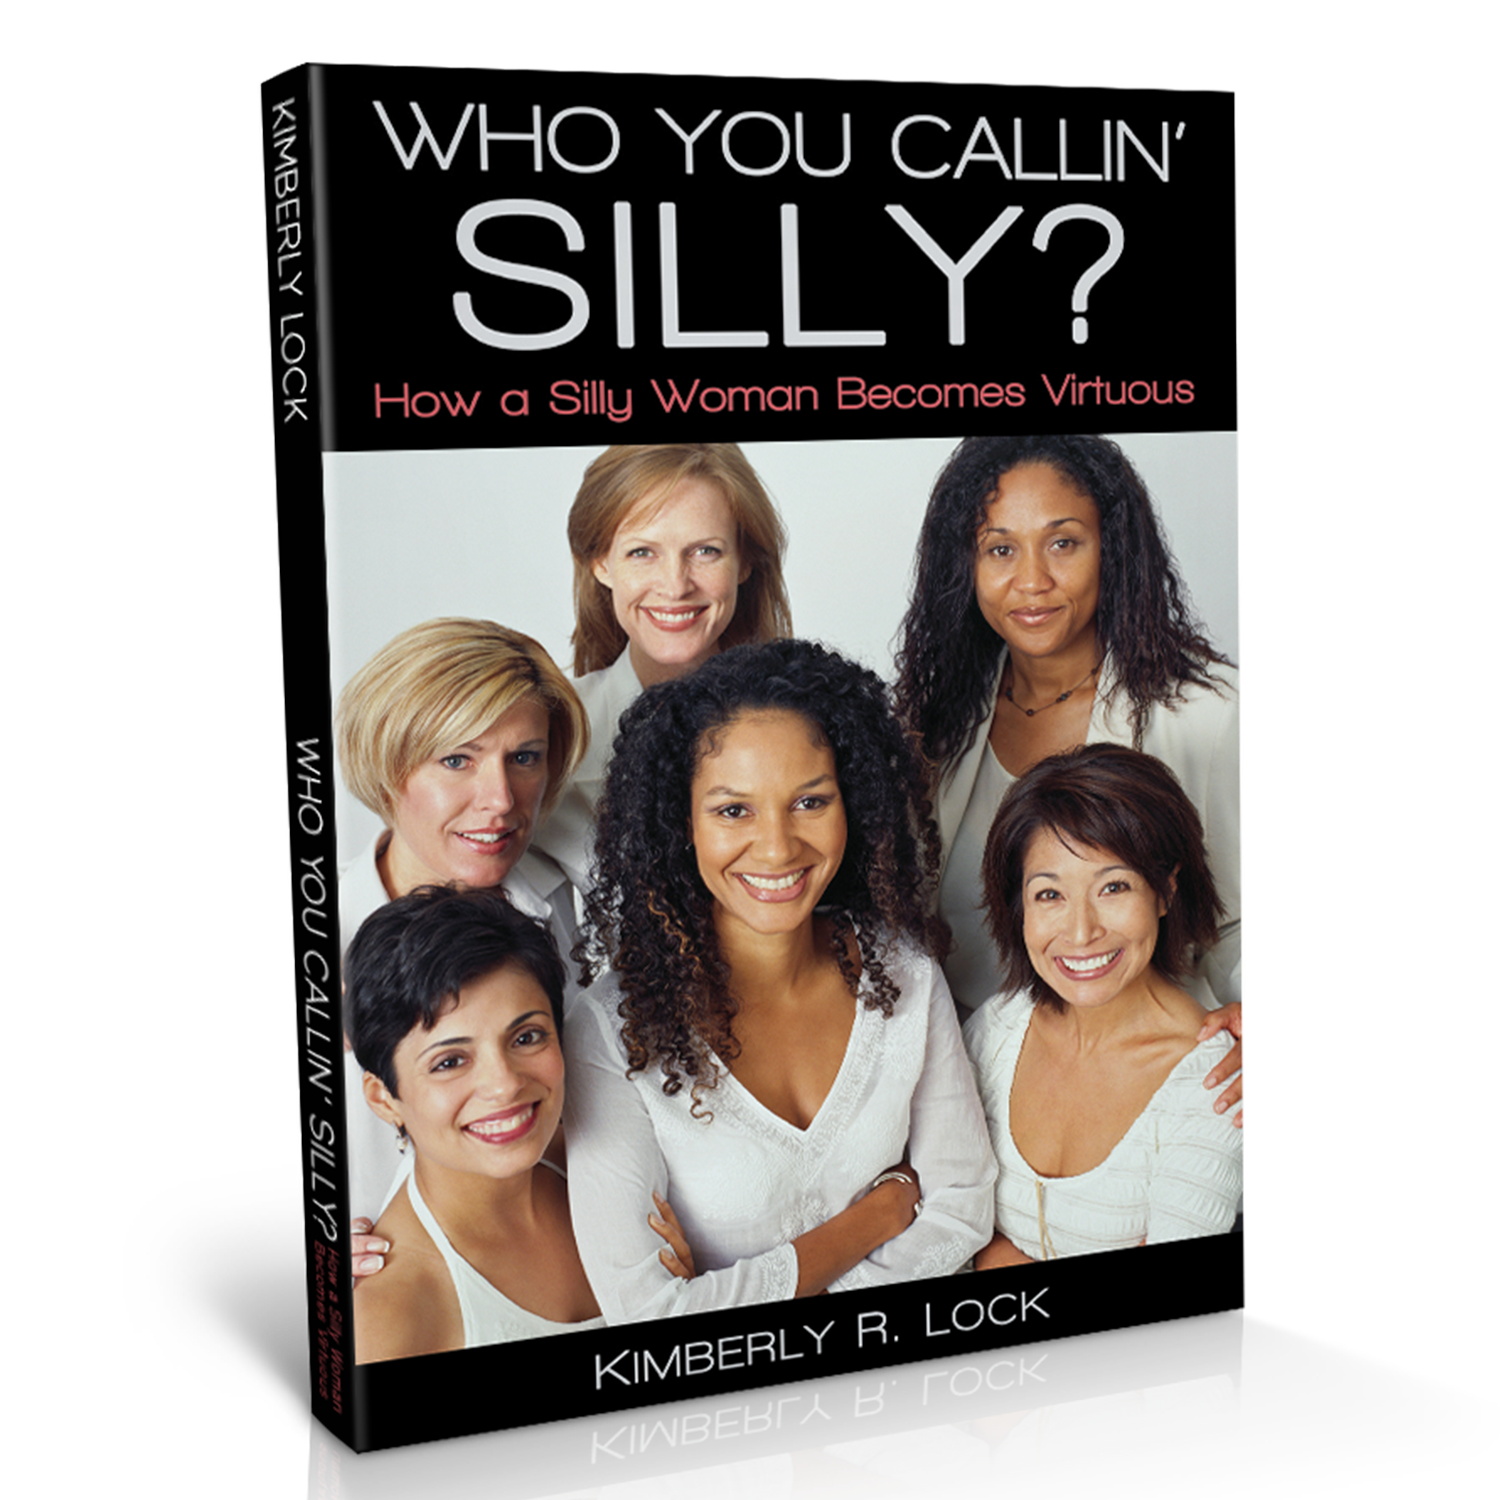 Who You Callin' Silly? How a Silly Woman Becomes Virtuous 00001